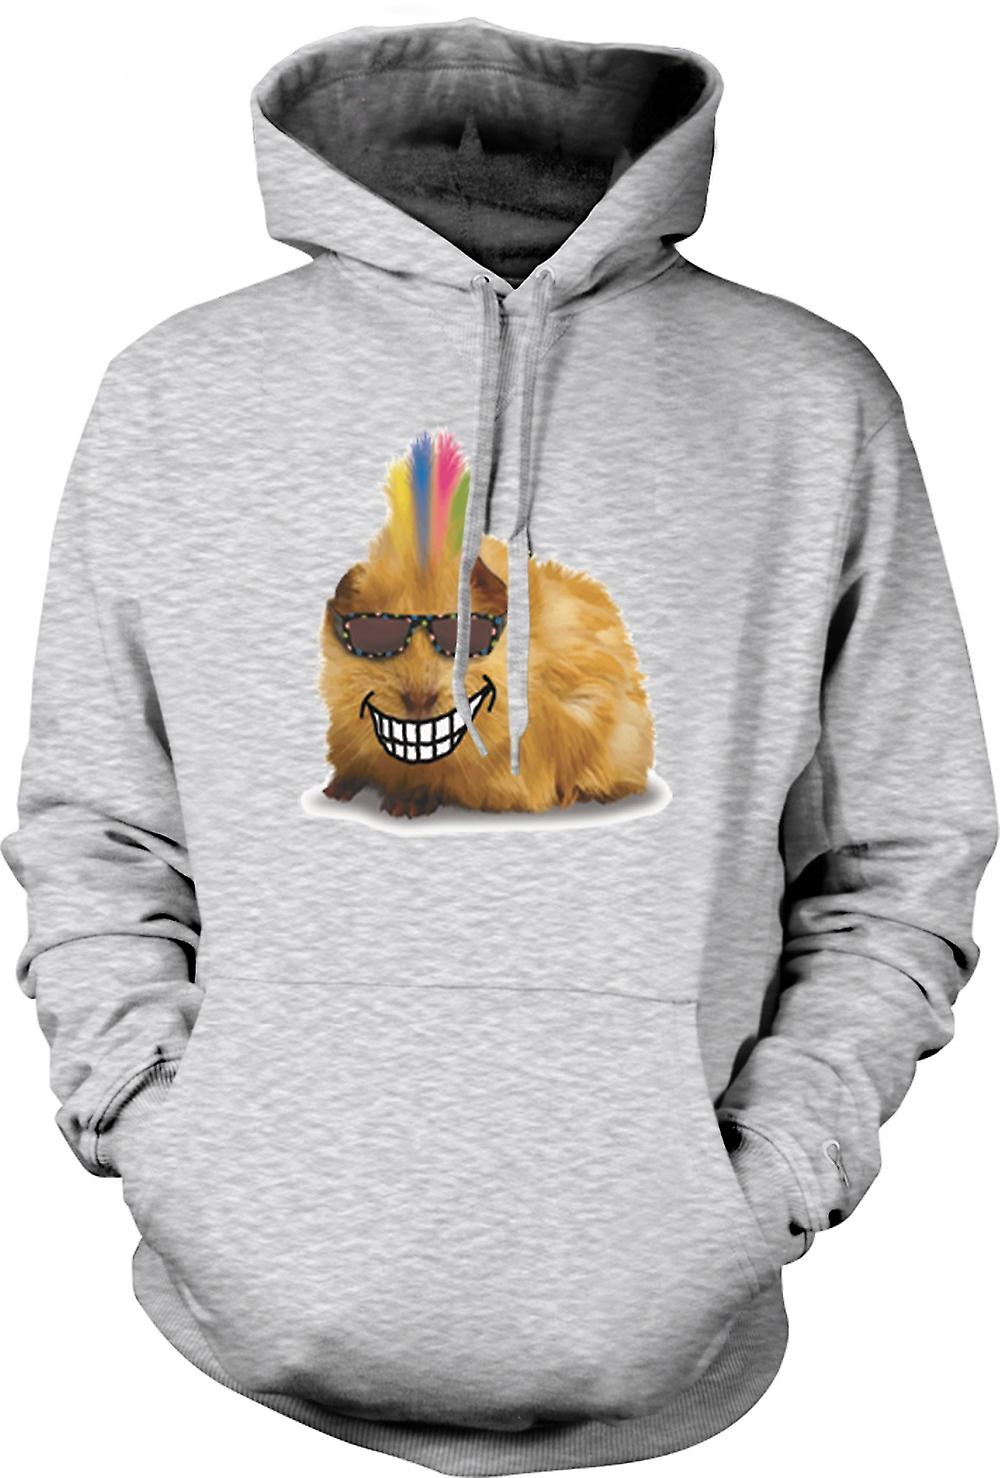 Mens Hoodie - Mohawk Styled Guinée Pig